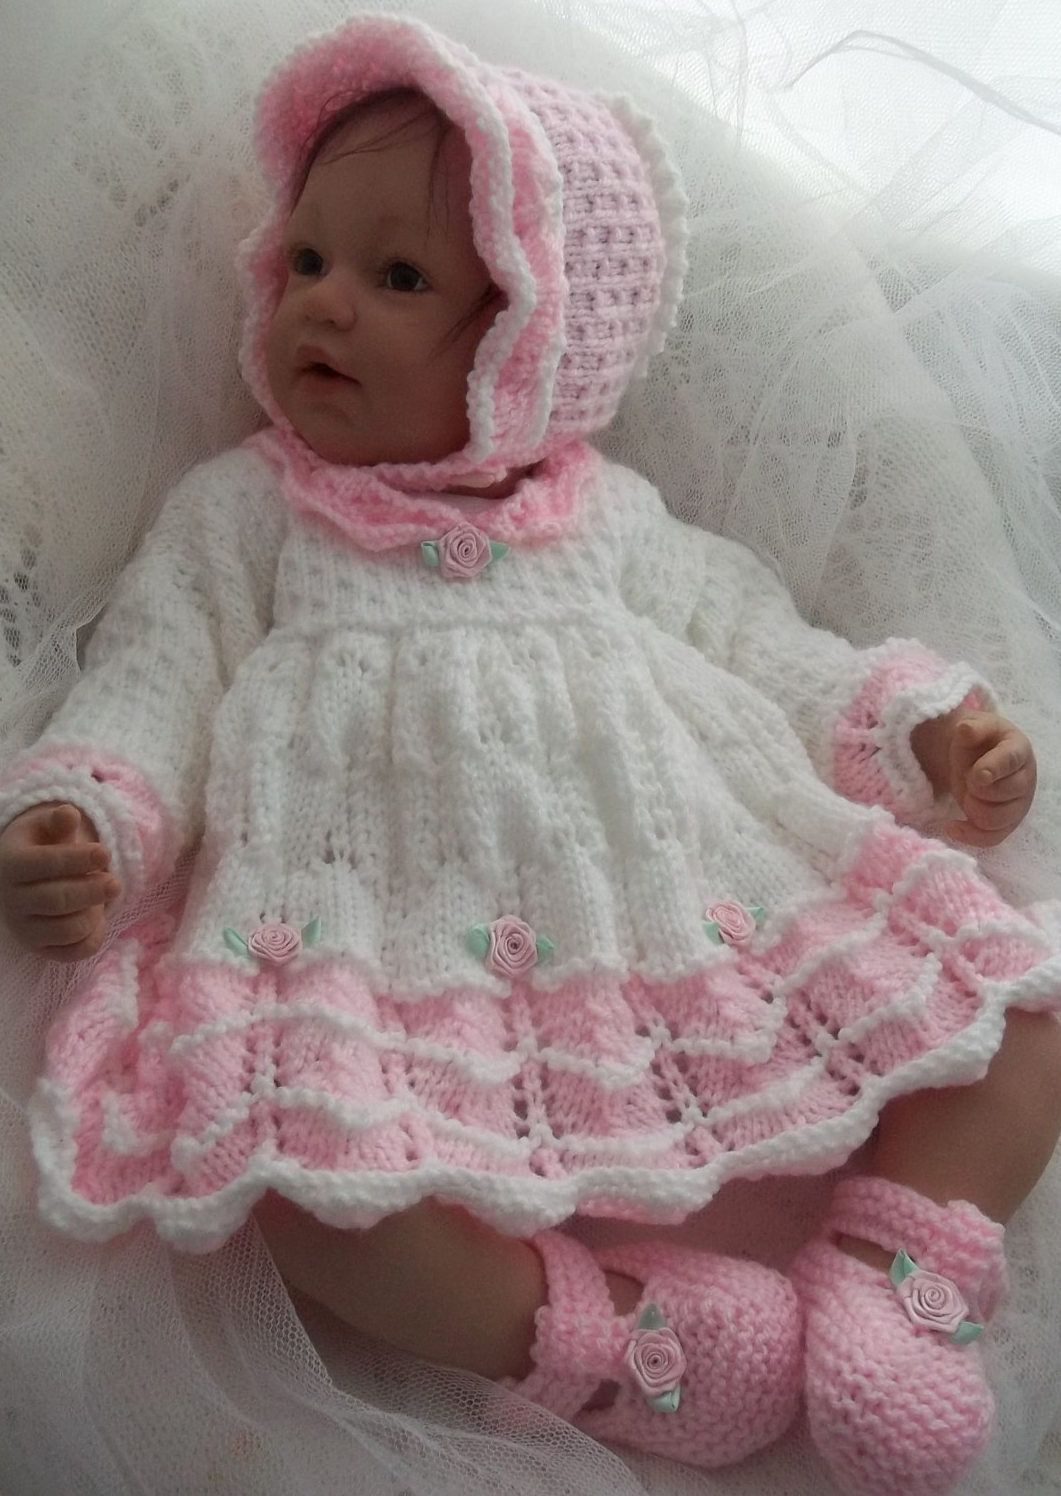 Dresses and skirts for children knitting patterns lace knitting free knitting pattern for scalloped baby dress bonnet booties this lace dress set bankloansurffo Gallery